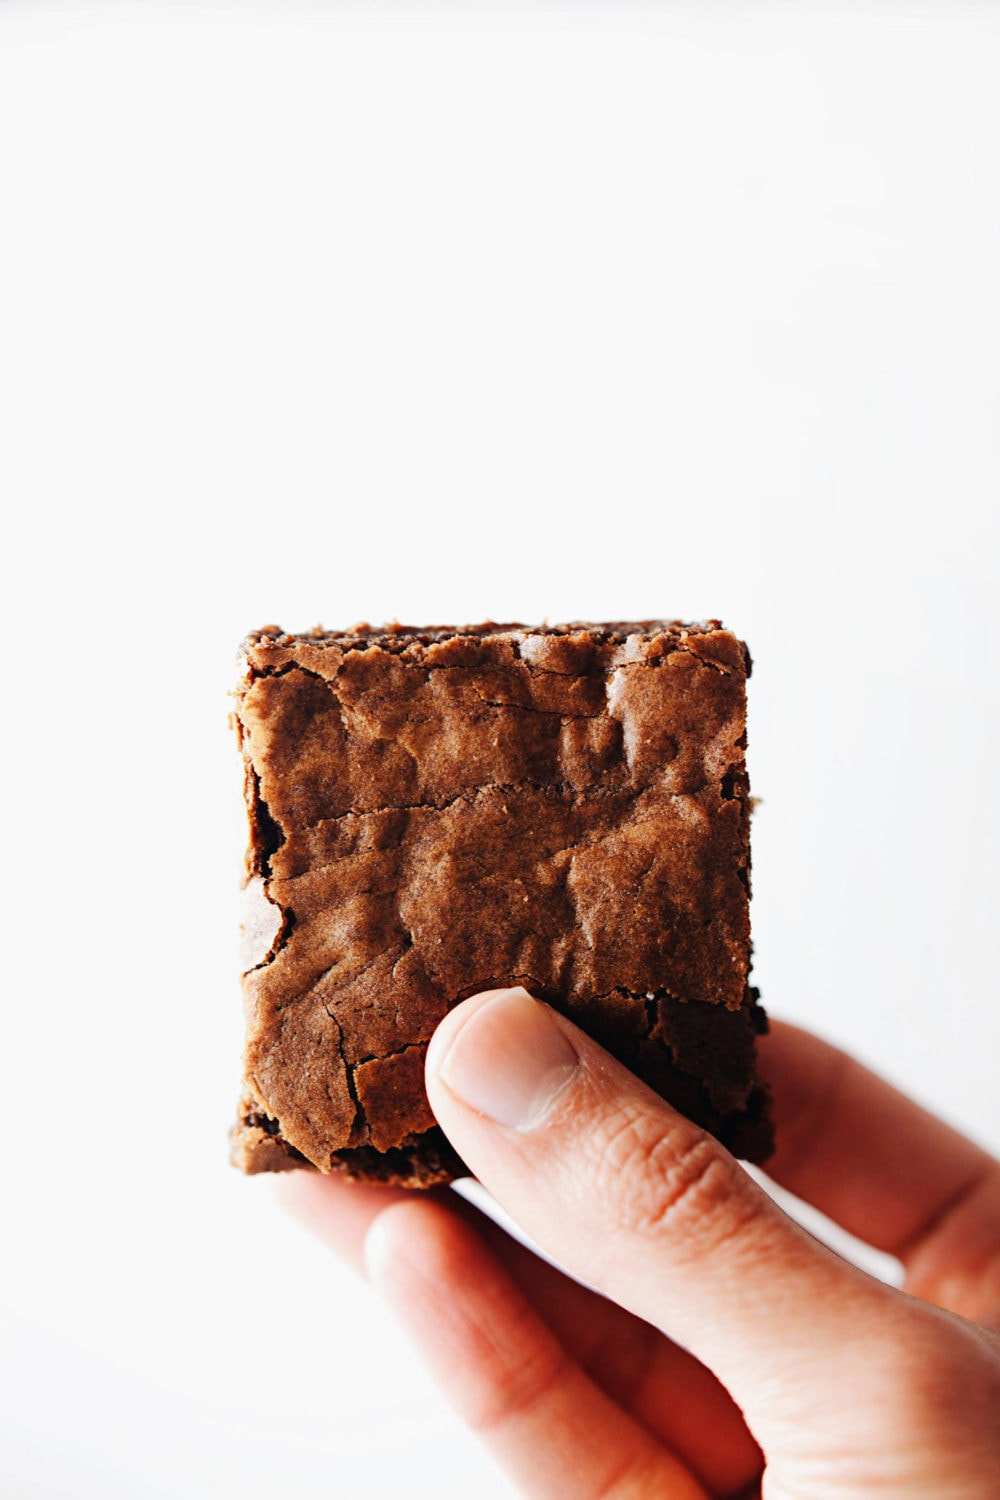 Super Fudgy Coconut Oil Brownies that are rich, decadent, with a healthy substitution of coconut oil for butter. So irresistible and easy to make! | asimplepalate.com #coconutoil #baking #brownies #chocolate #fudgybrownies #dessert